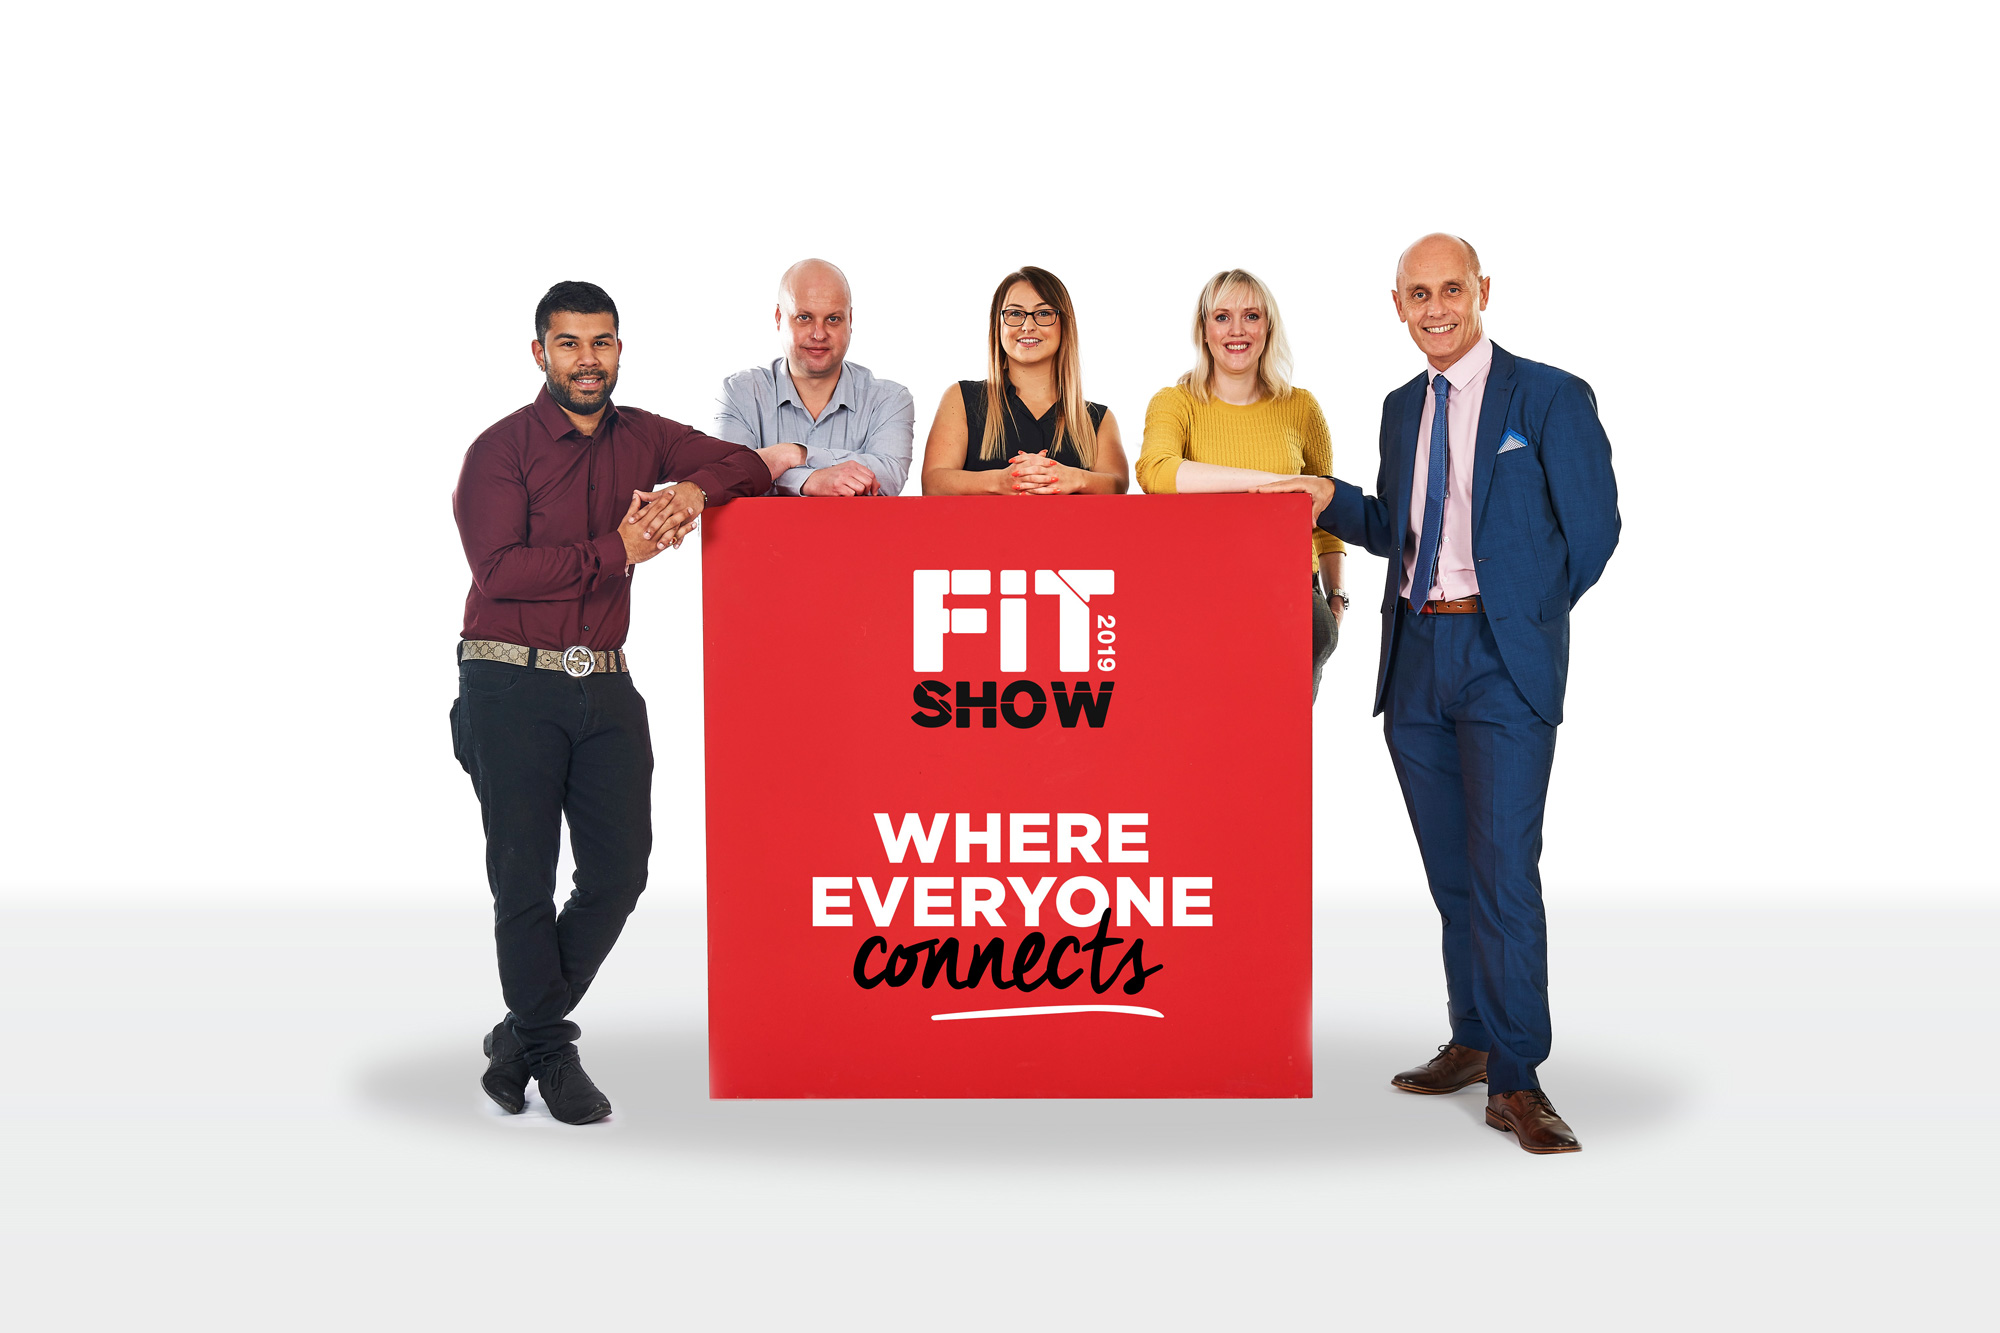 WINDOW WAREHOUSE TO DEBUT AT FIT SHOW 2019